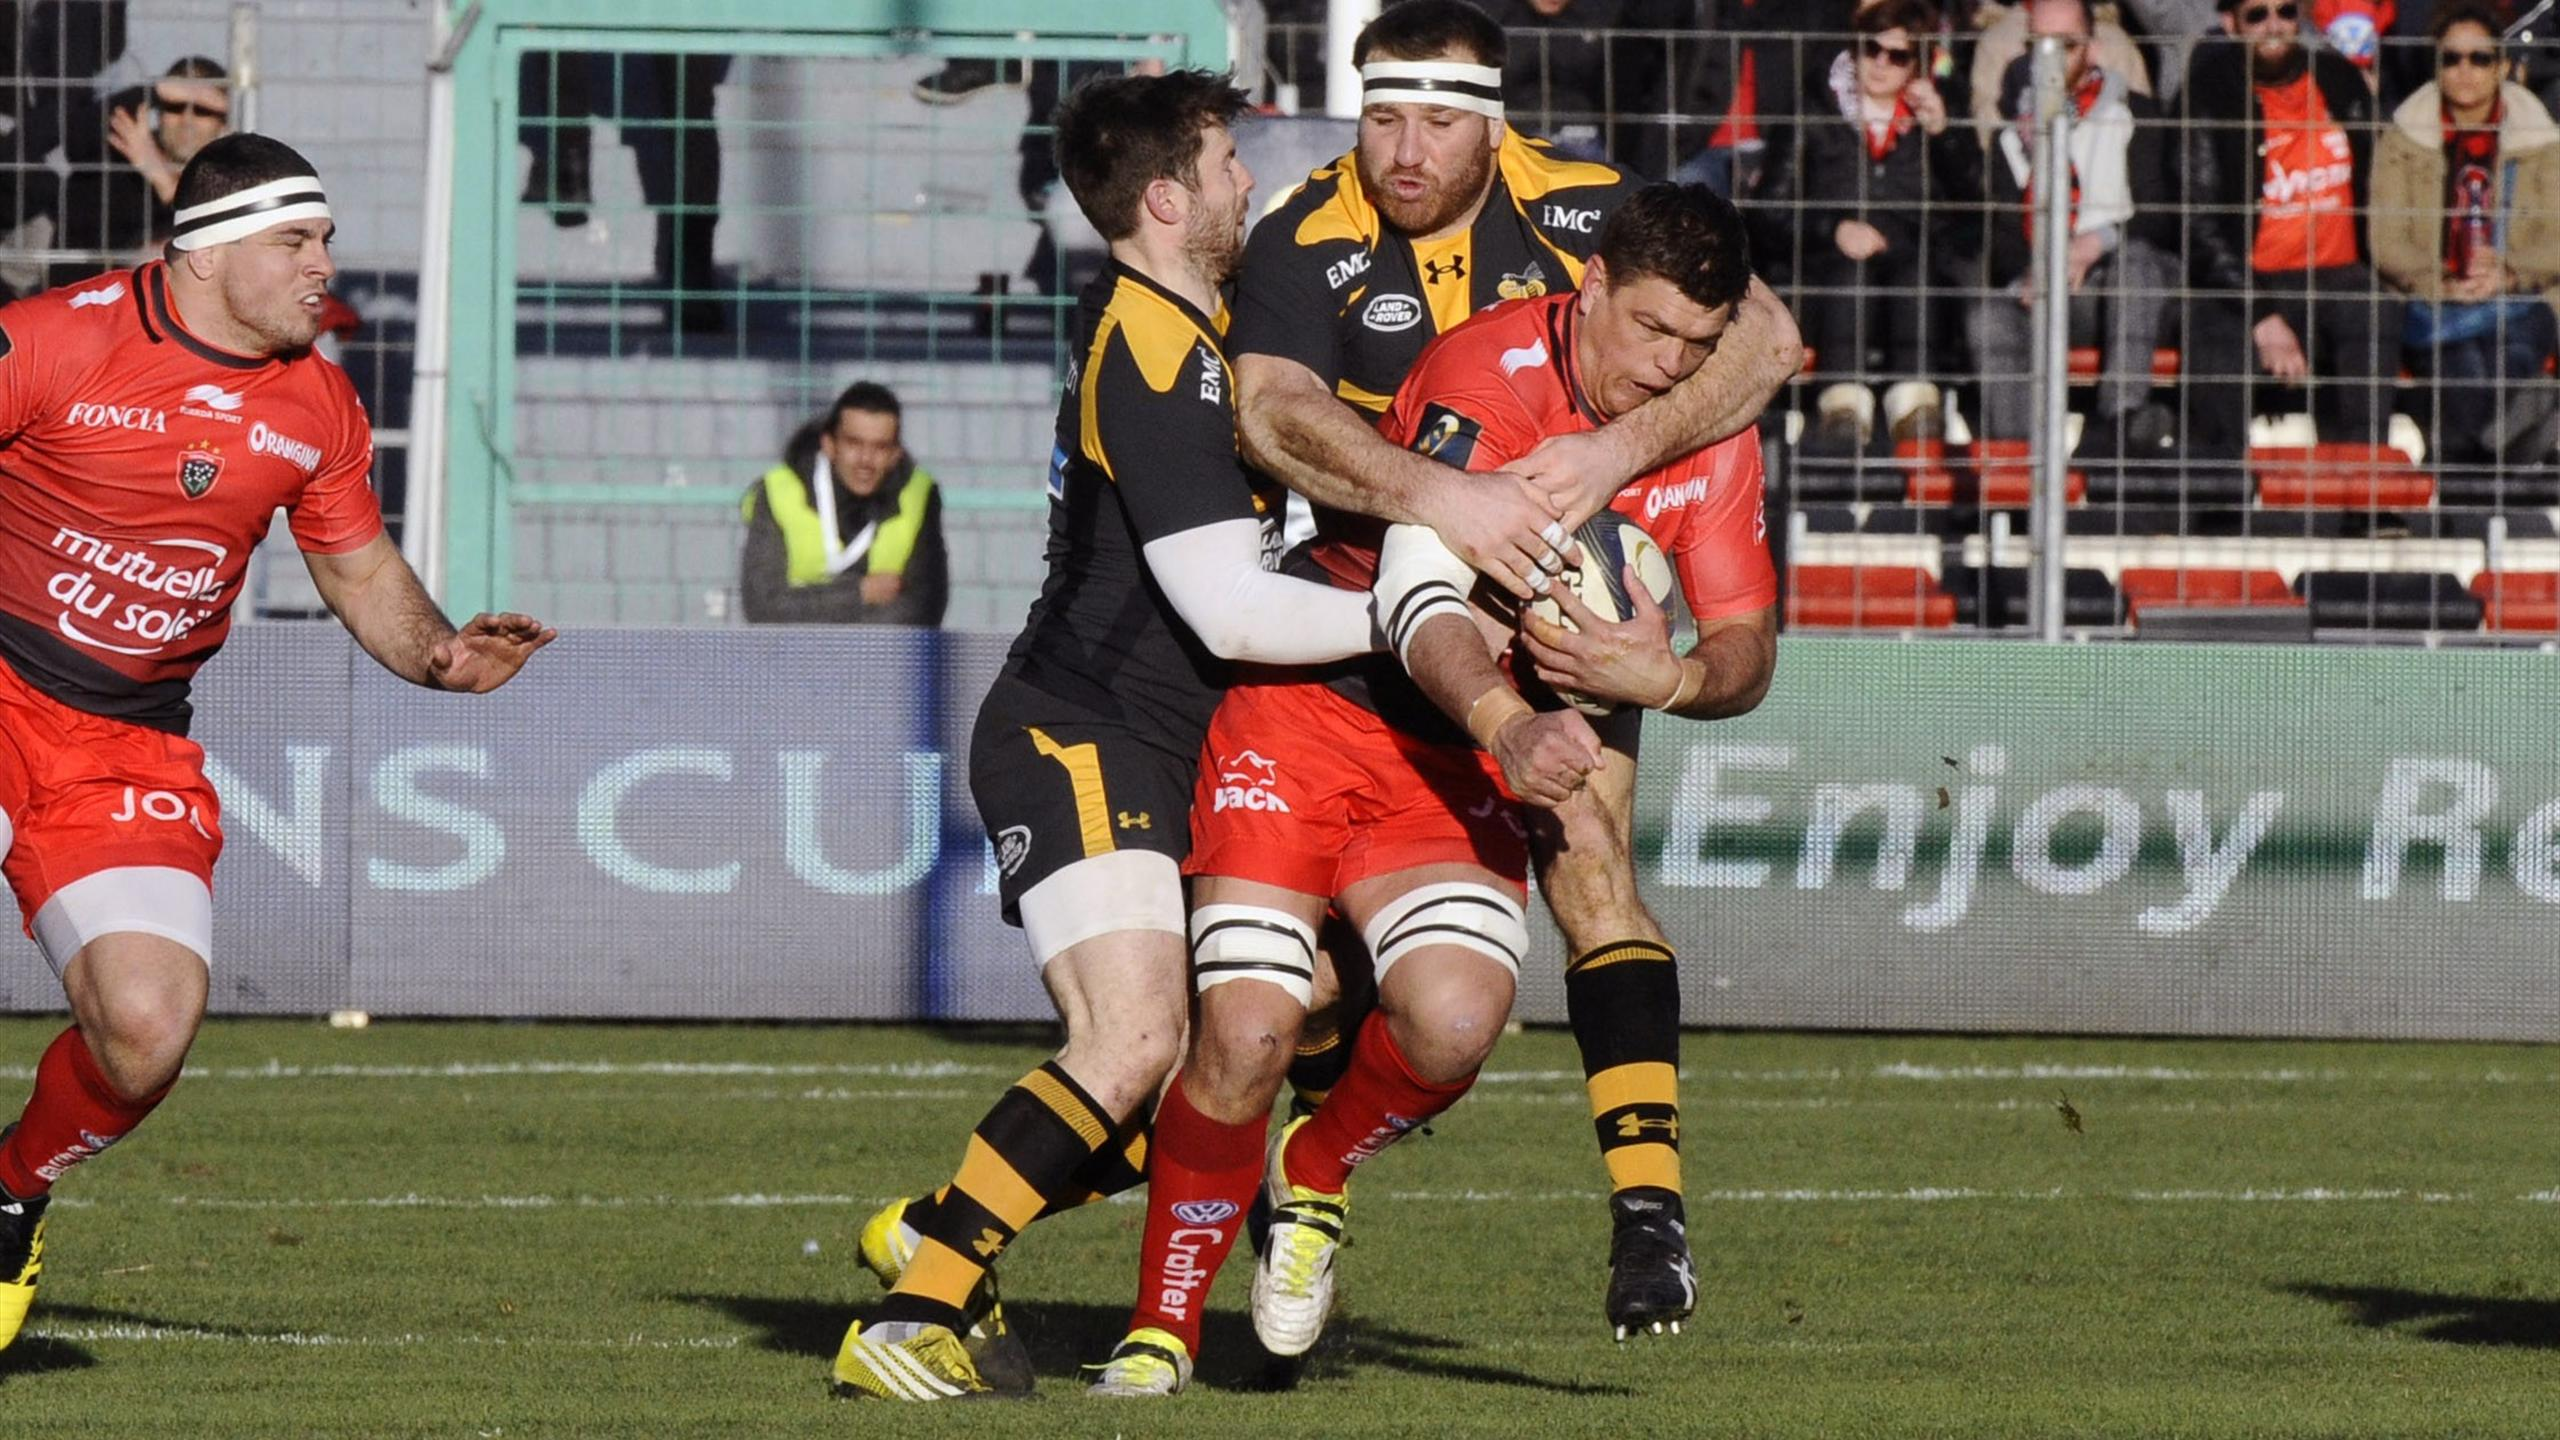 Juan Smith (Toulon) face aux Wasps - 17 janvier 2016